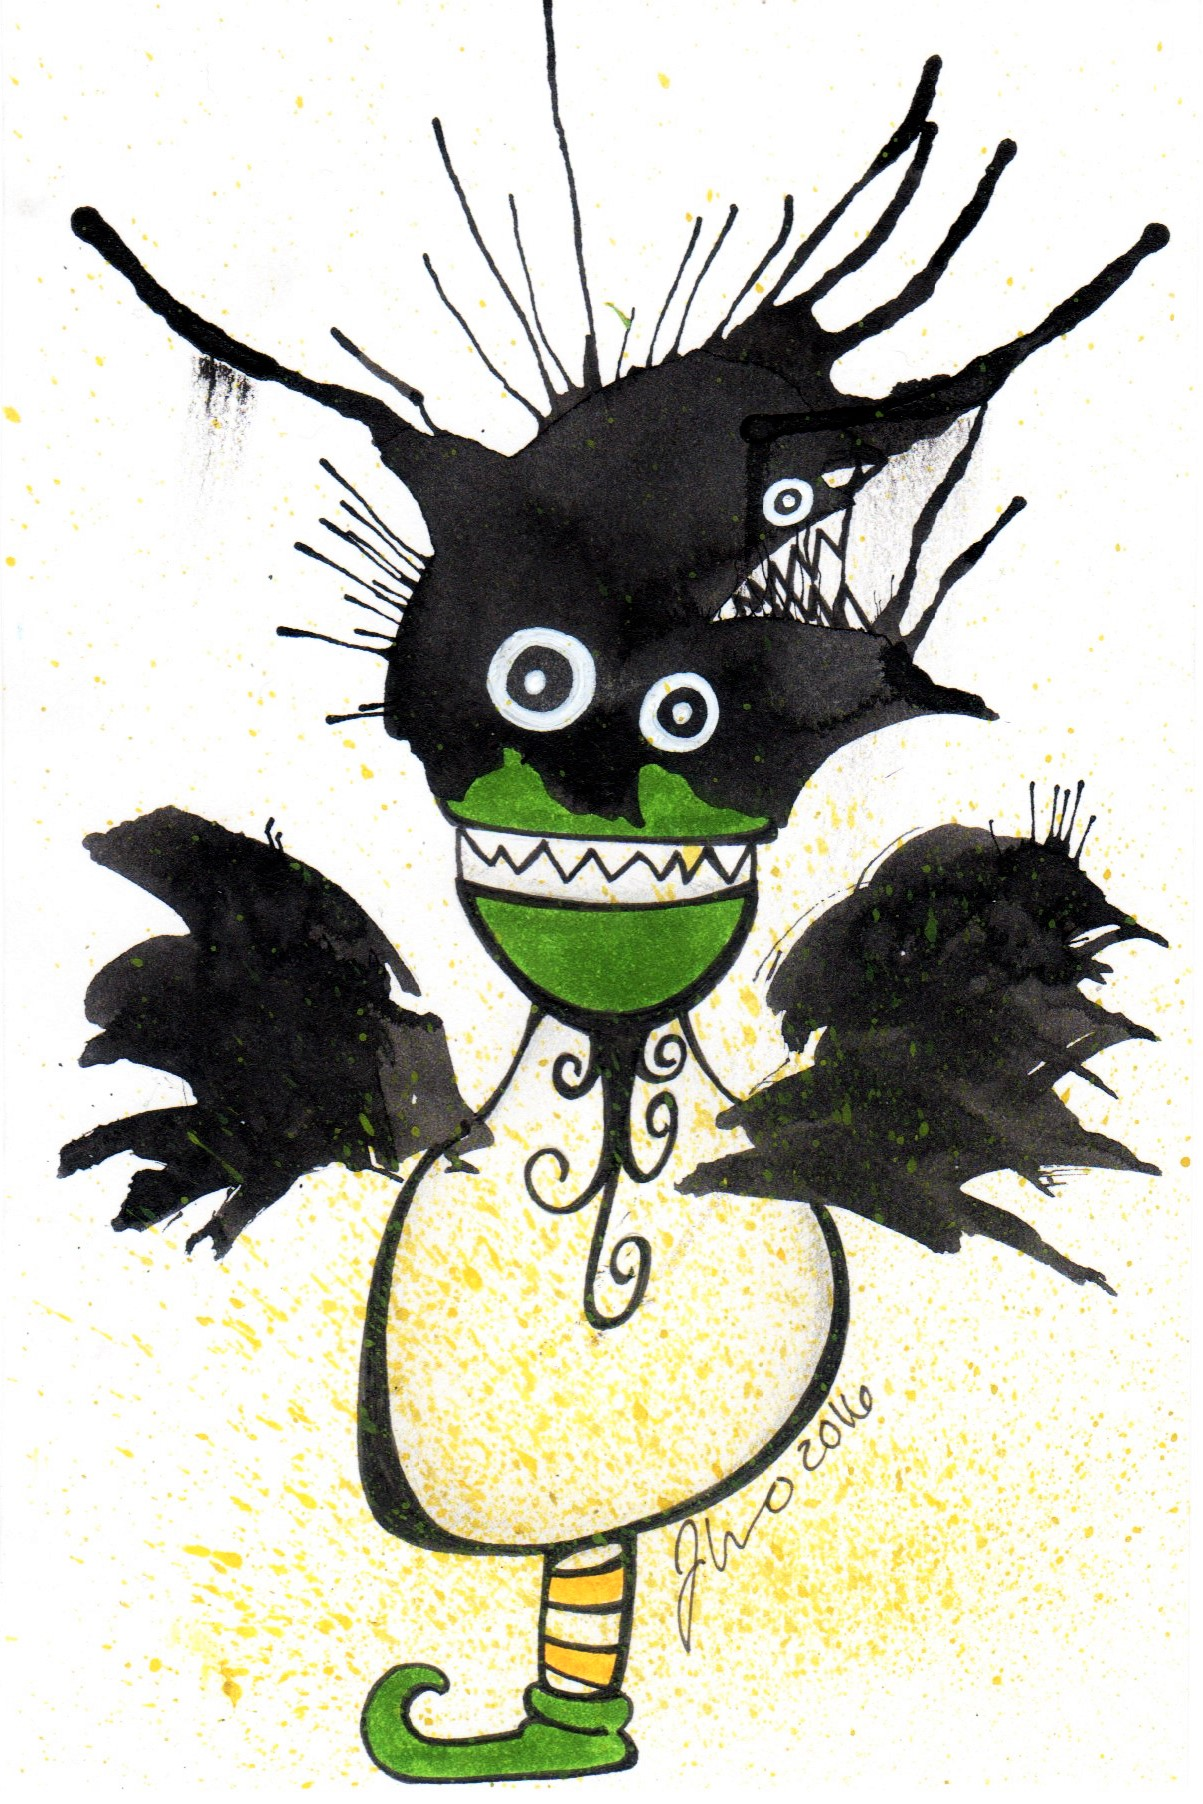 Ink Blot Monster #3